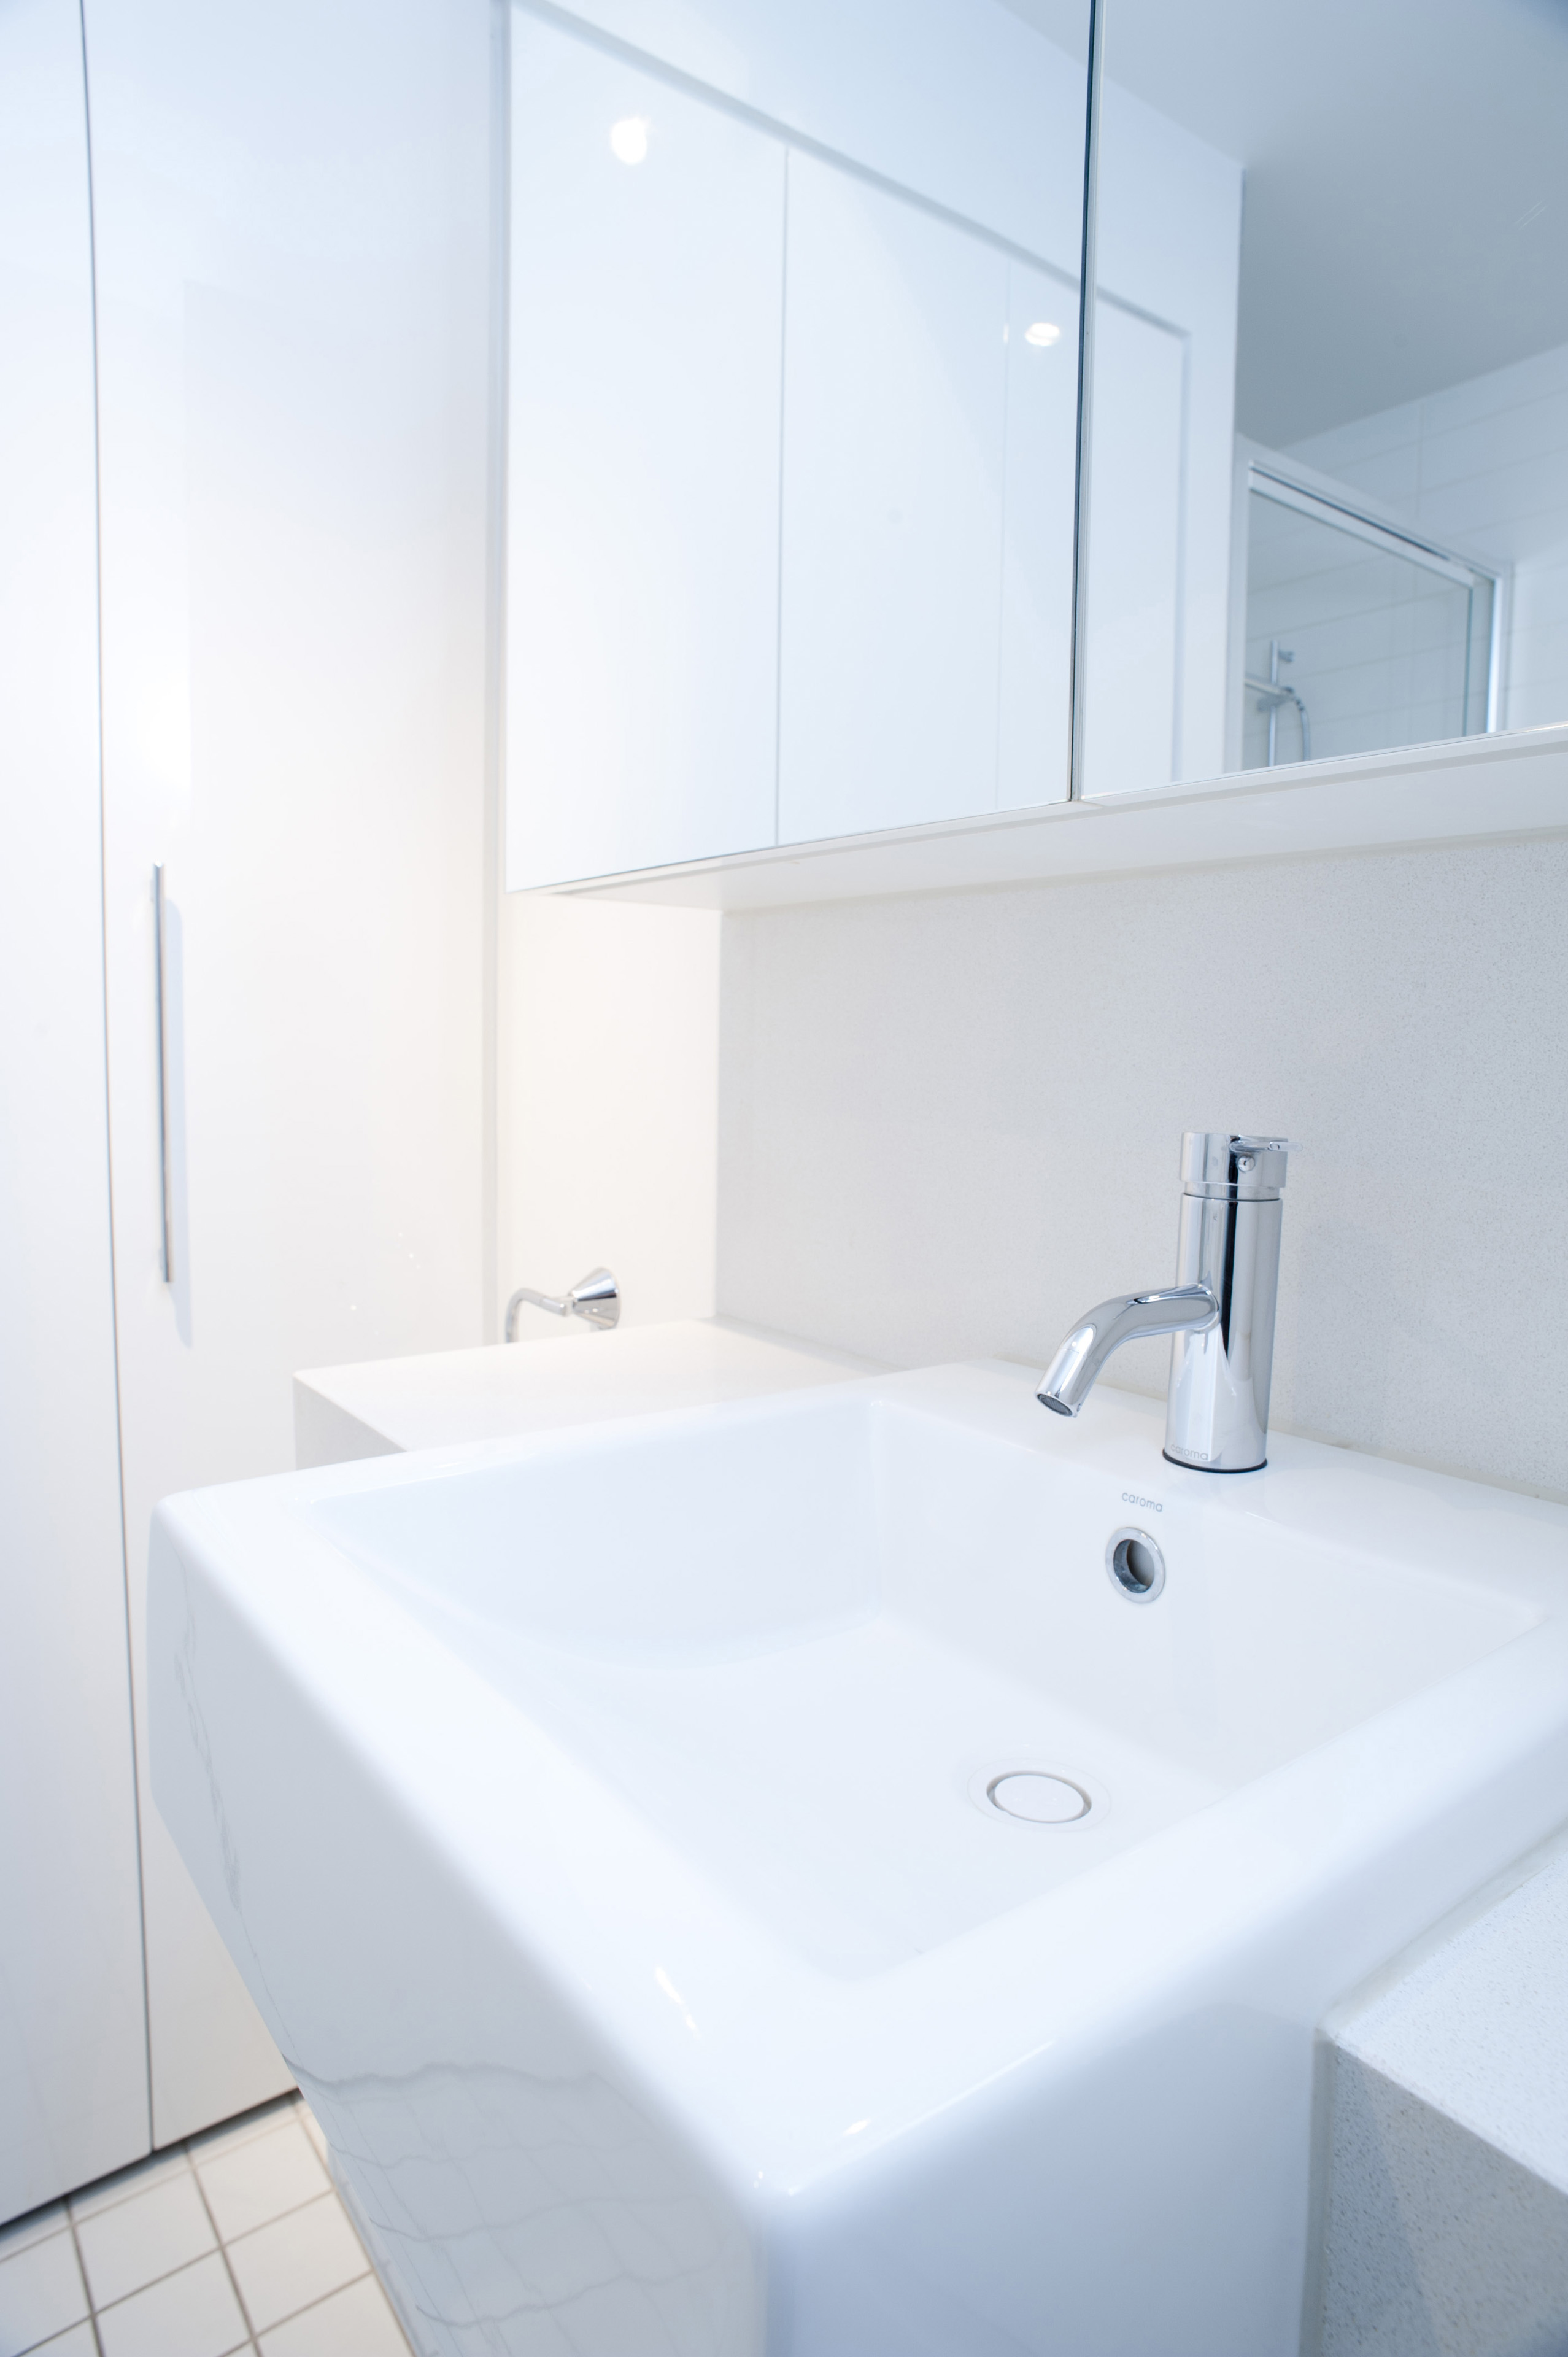 Close up interior view of a plain white handbasin and metal faucet in a white monochrome bathroom